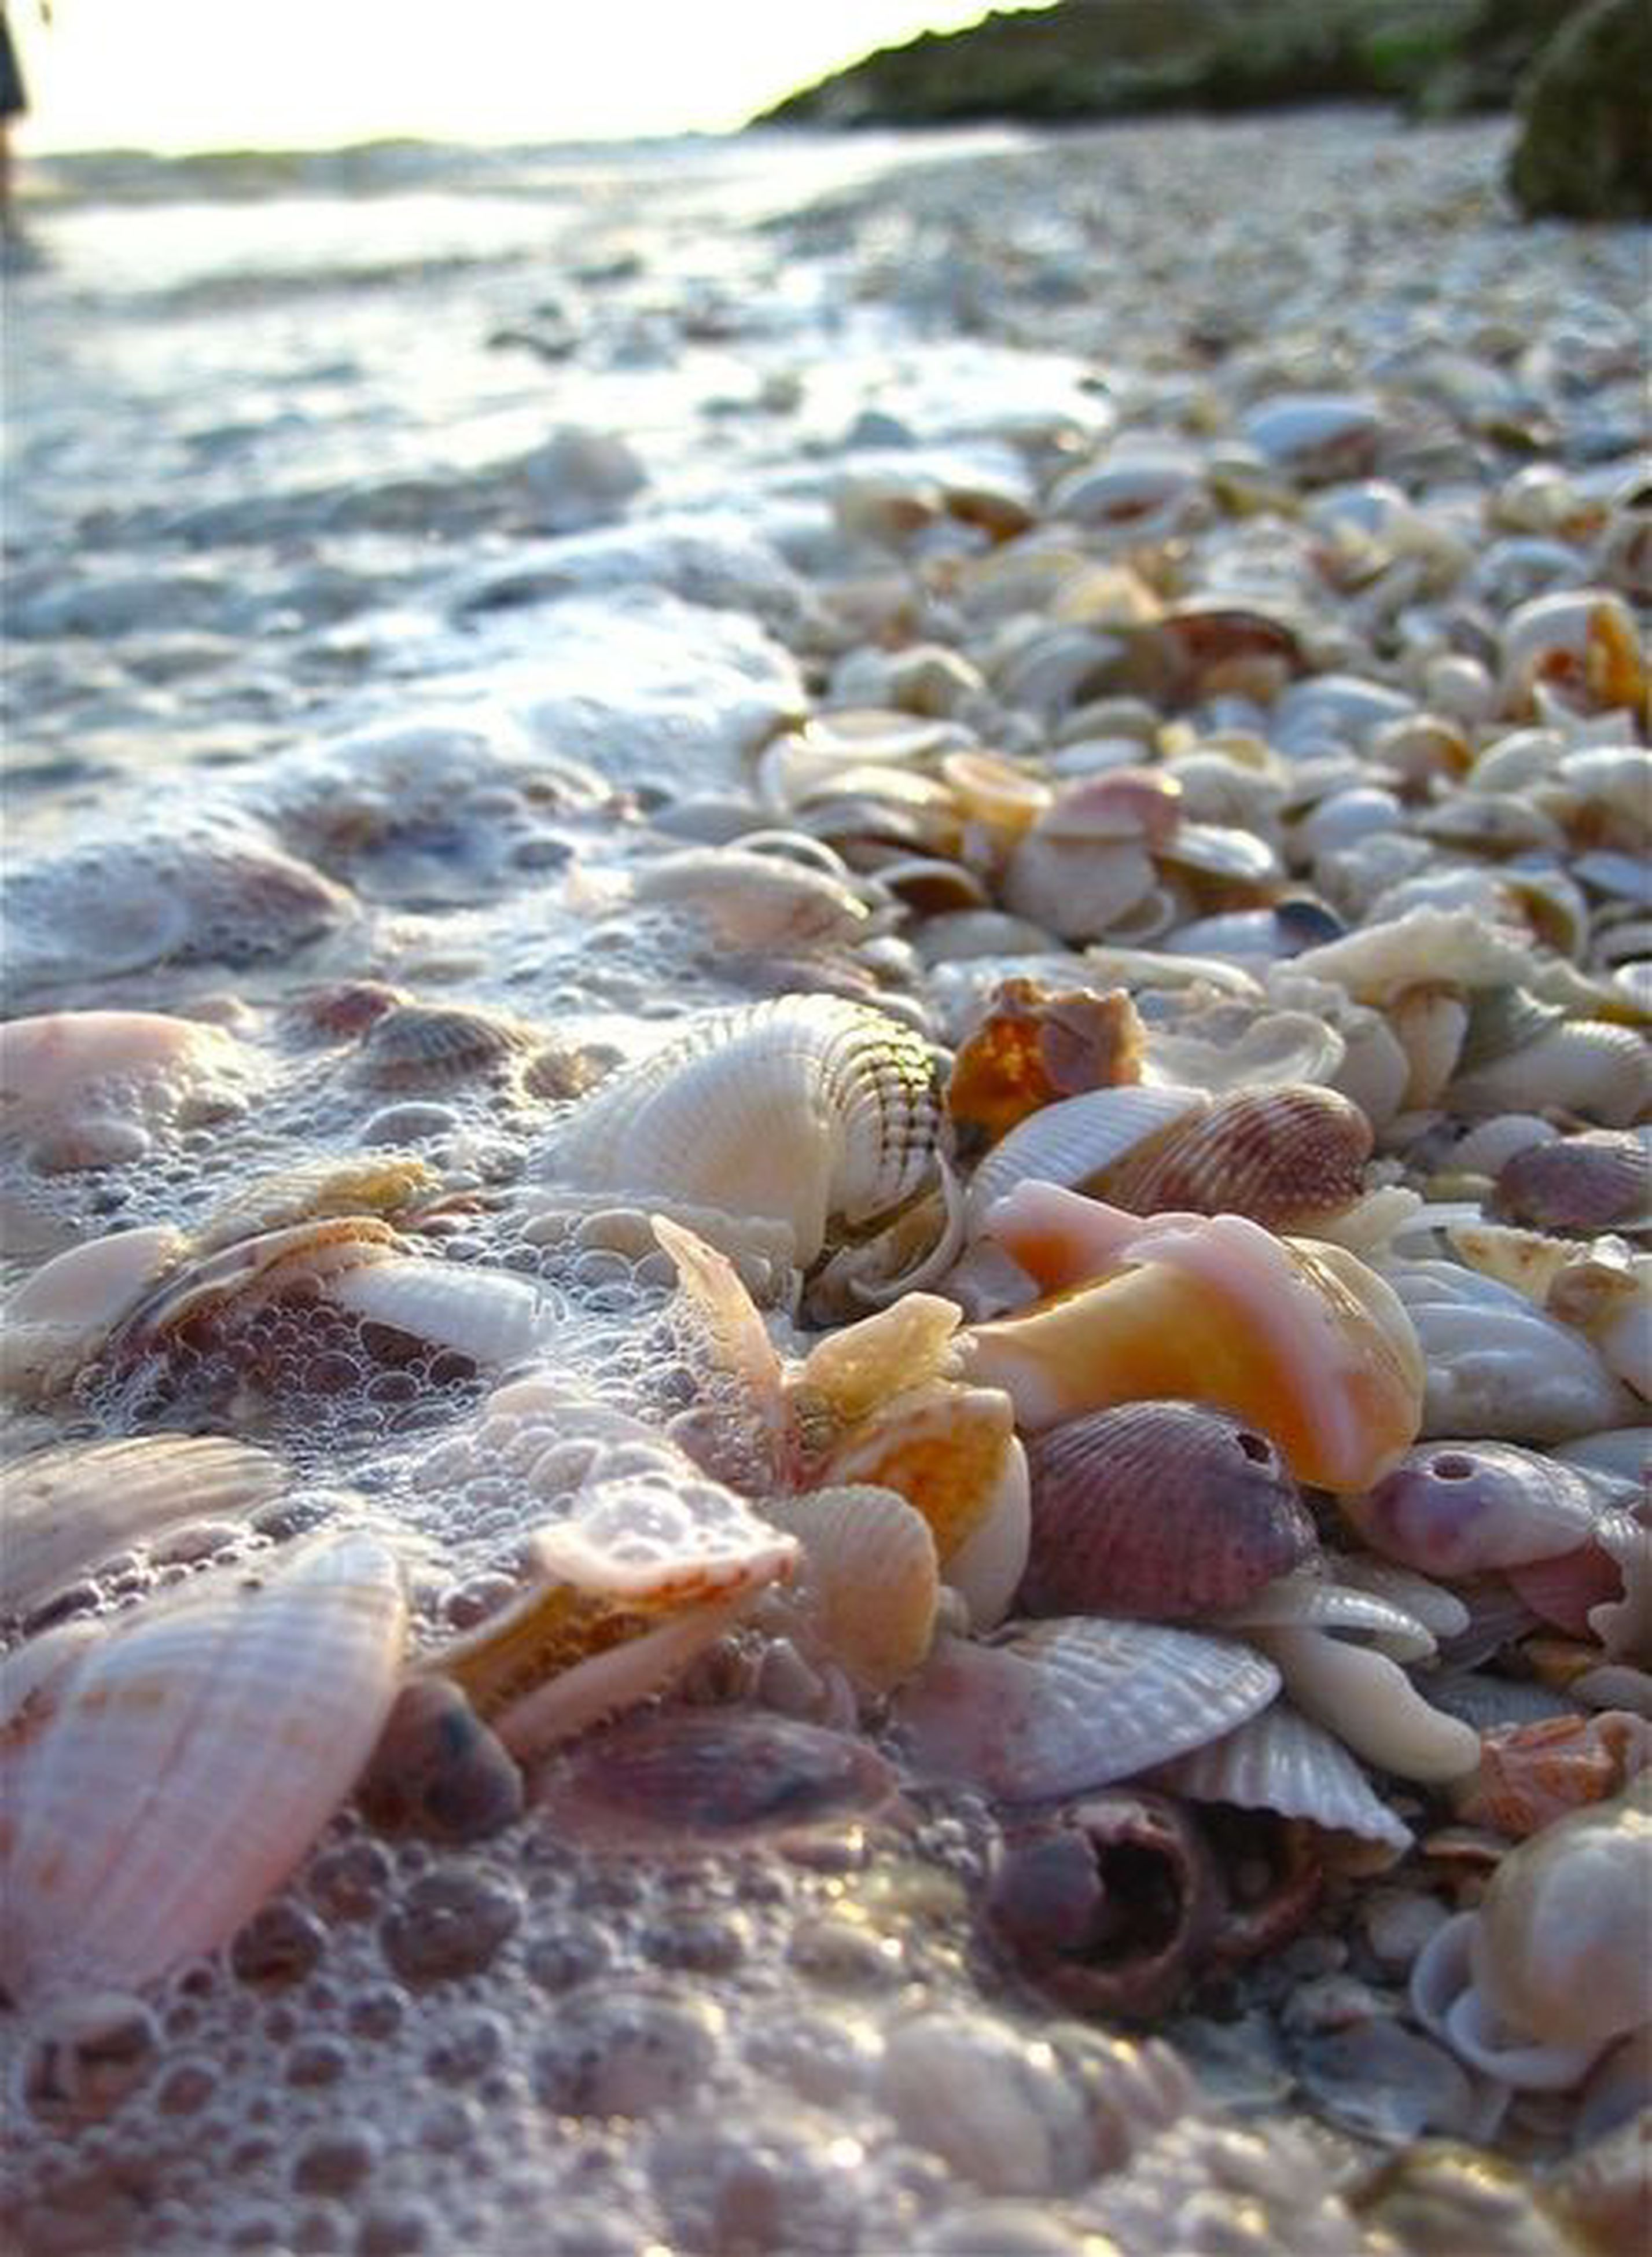 beach, sand, nature, water, shore, sea, pebble, seashell, tranquility, close-up, stone - object, focus on foreground, beauty in nature, rock - object, shell, day, selective focus, surface level, animal shell, outdoors